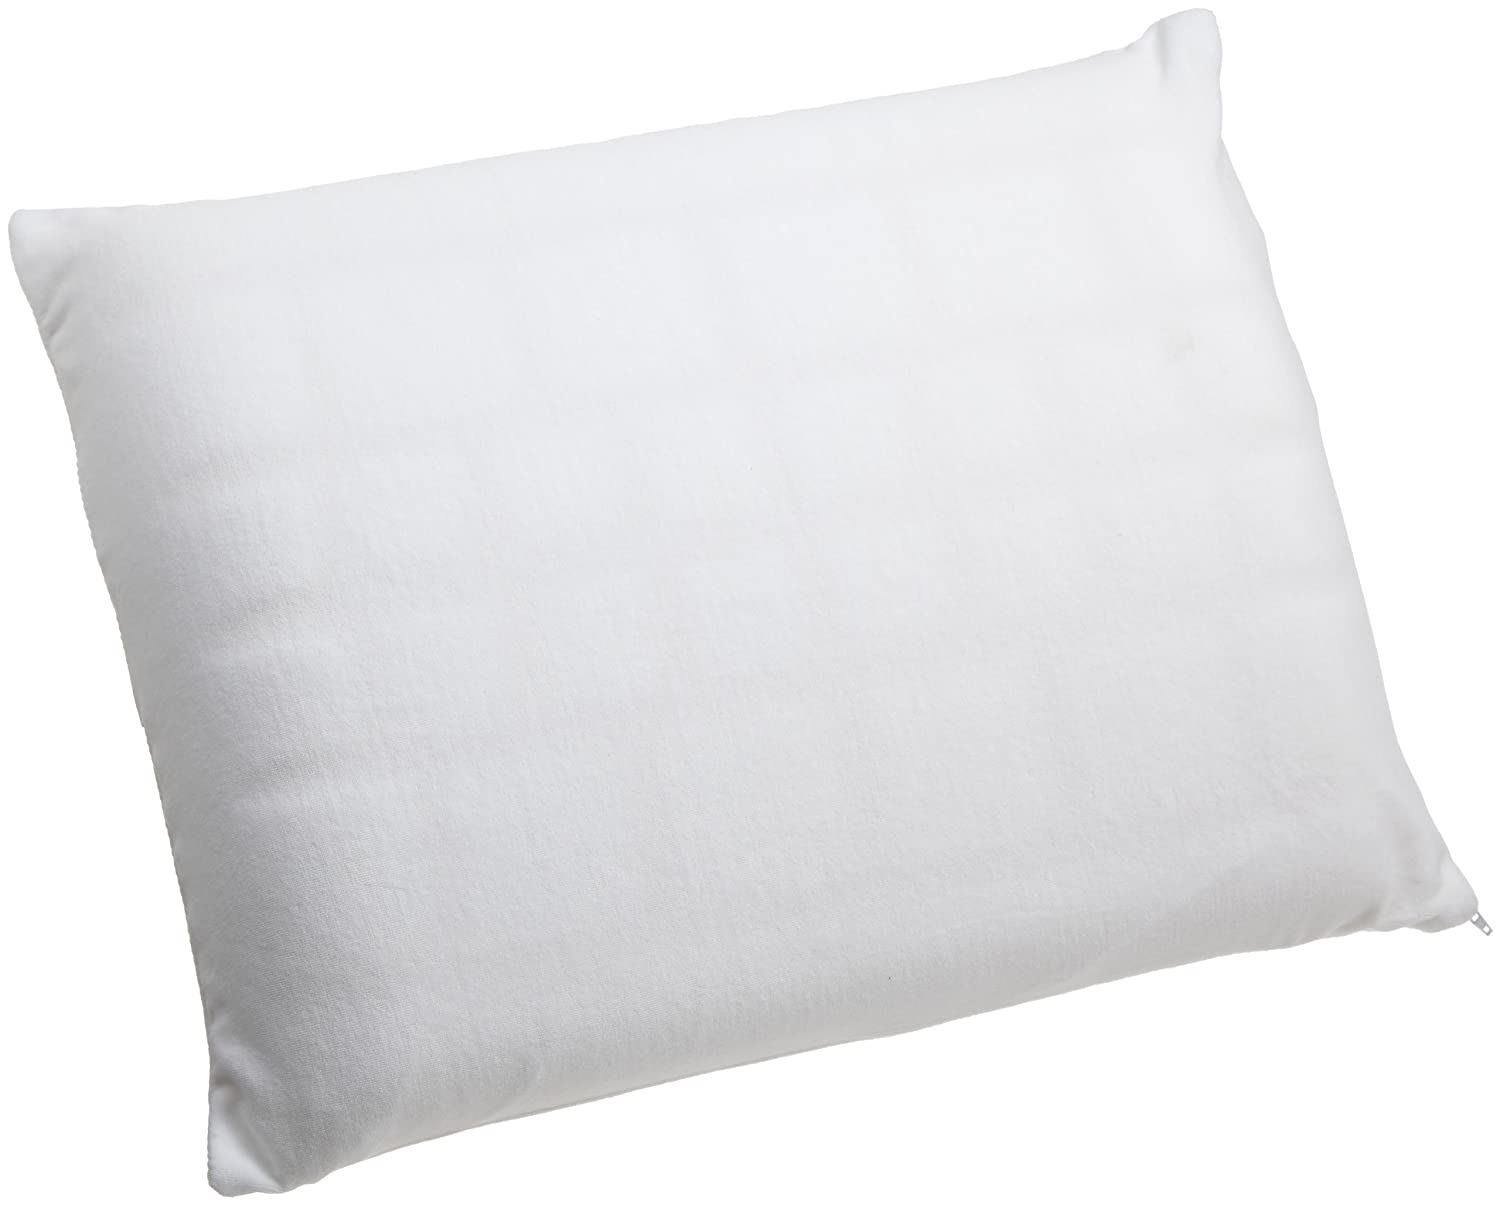 Isotonic Comfort Zone Bed Pillow Traditional Shape Designed Memory Badroom Home eBay